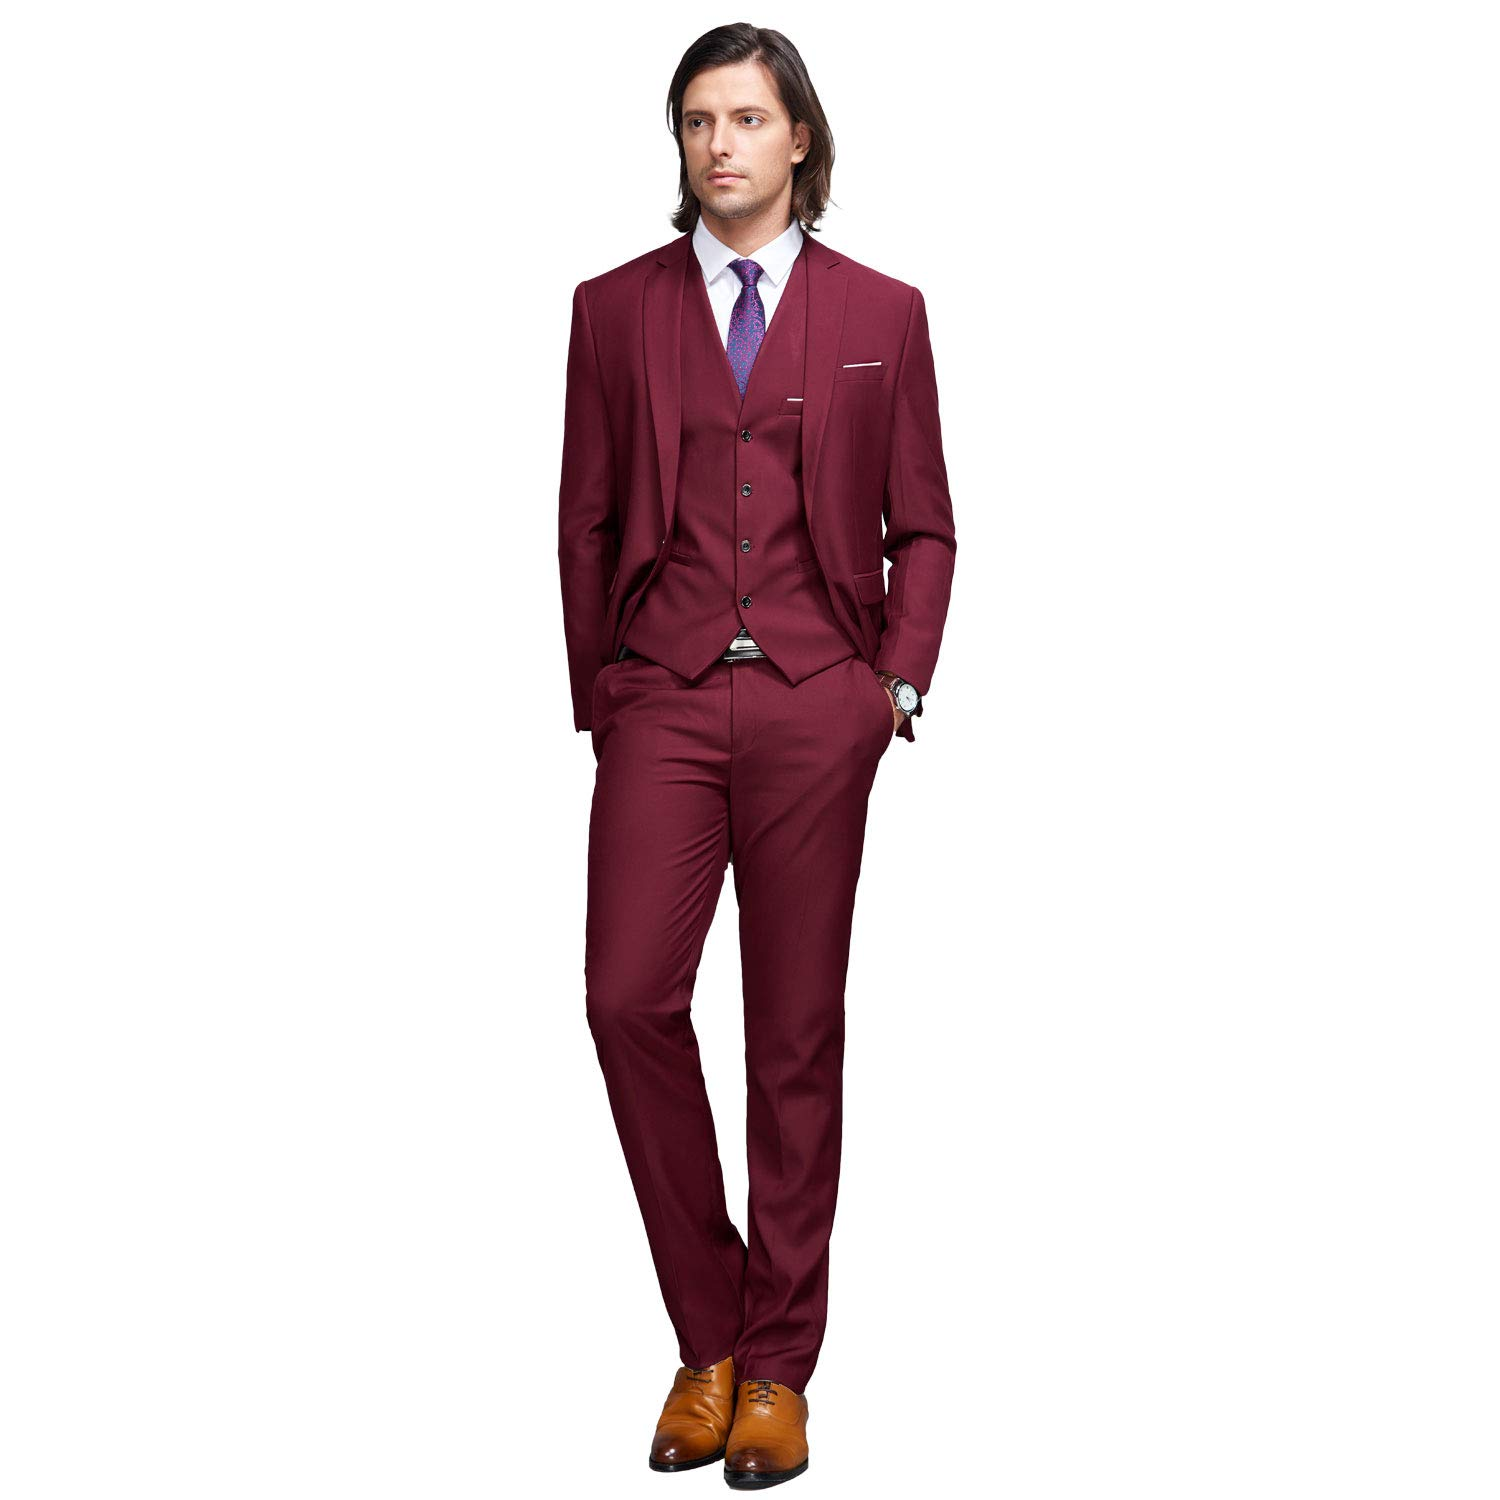 YIMANIE Mens Solid 3-Piece Suit One Button Formal Jacket Pants Vest Set Blazers, Wine Red, Medium